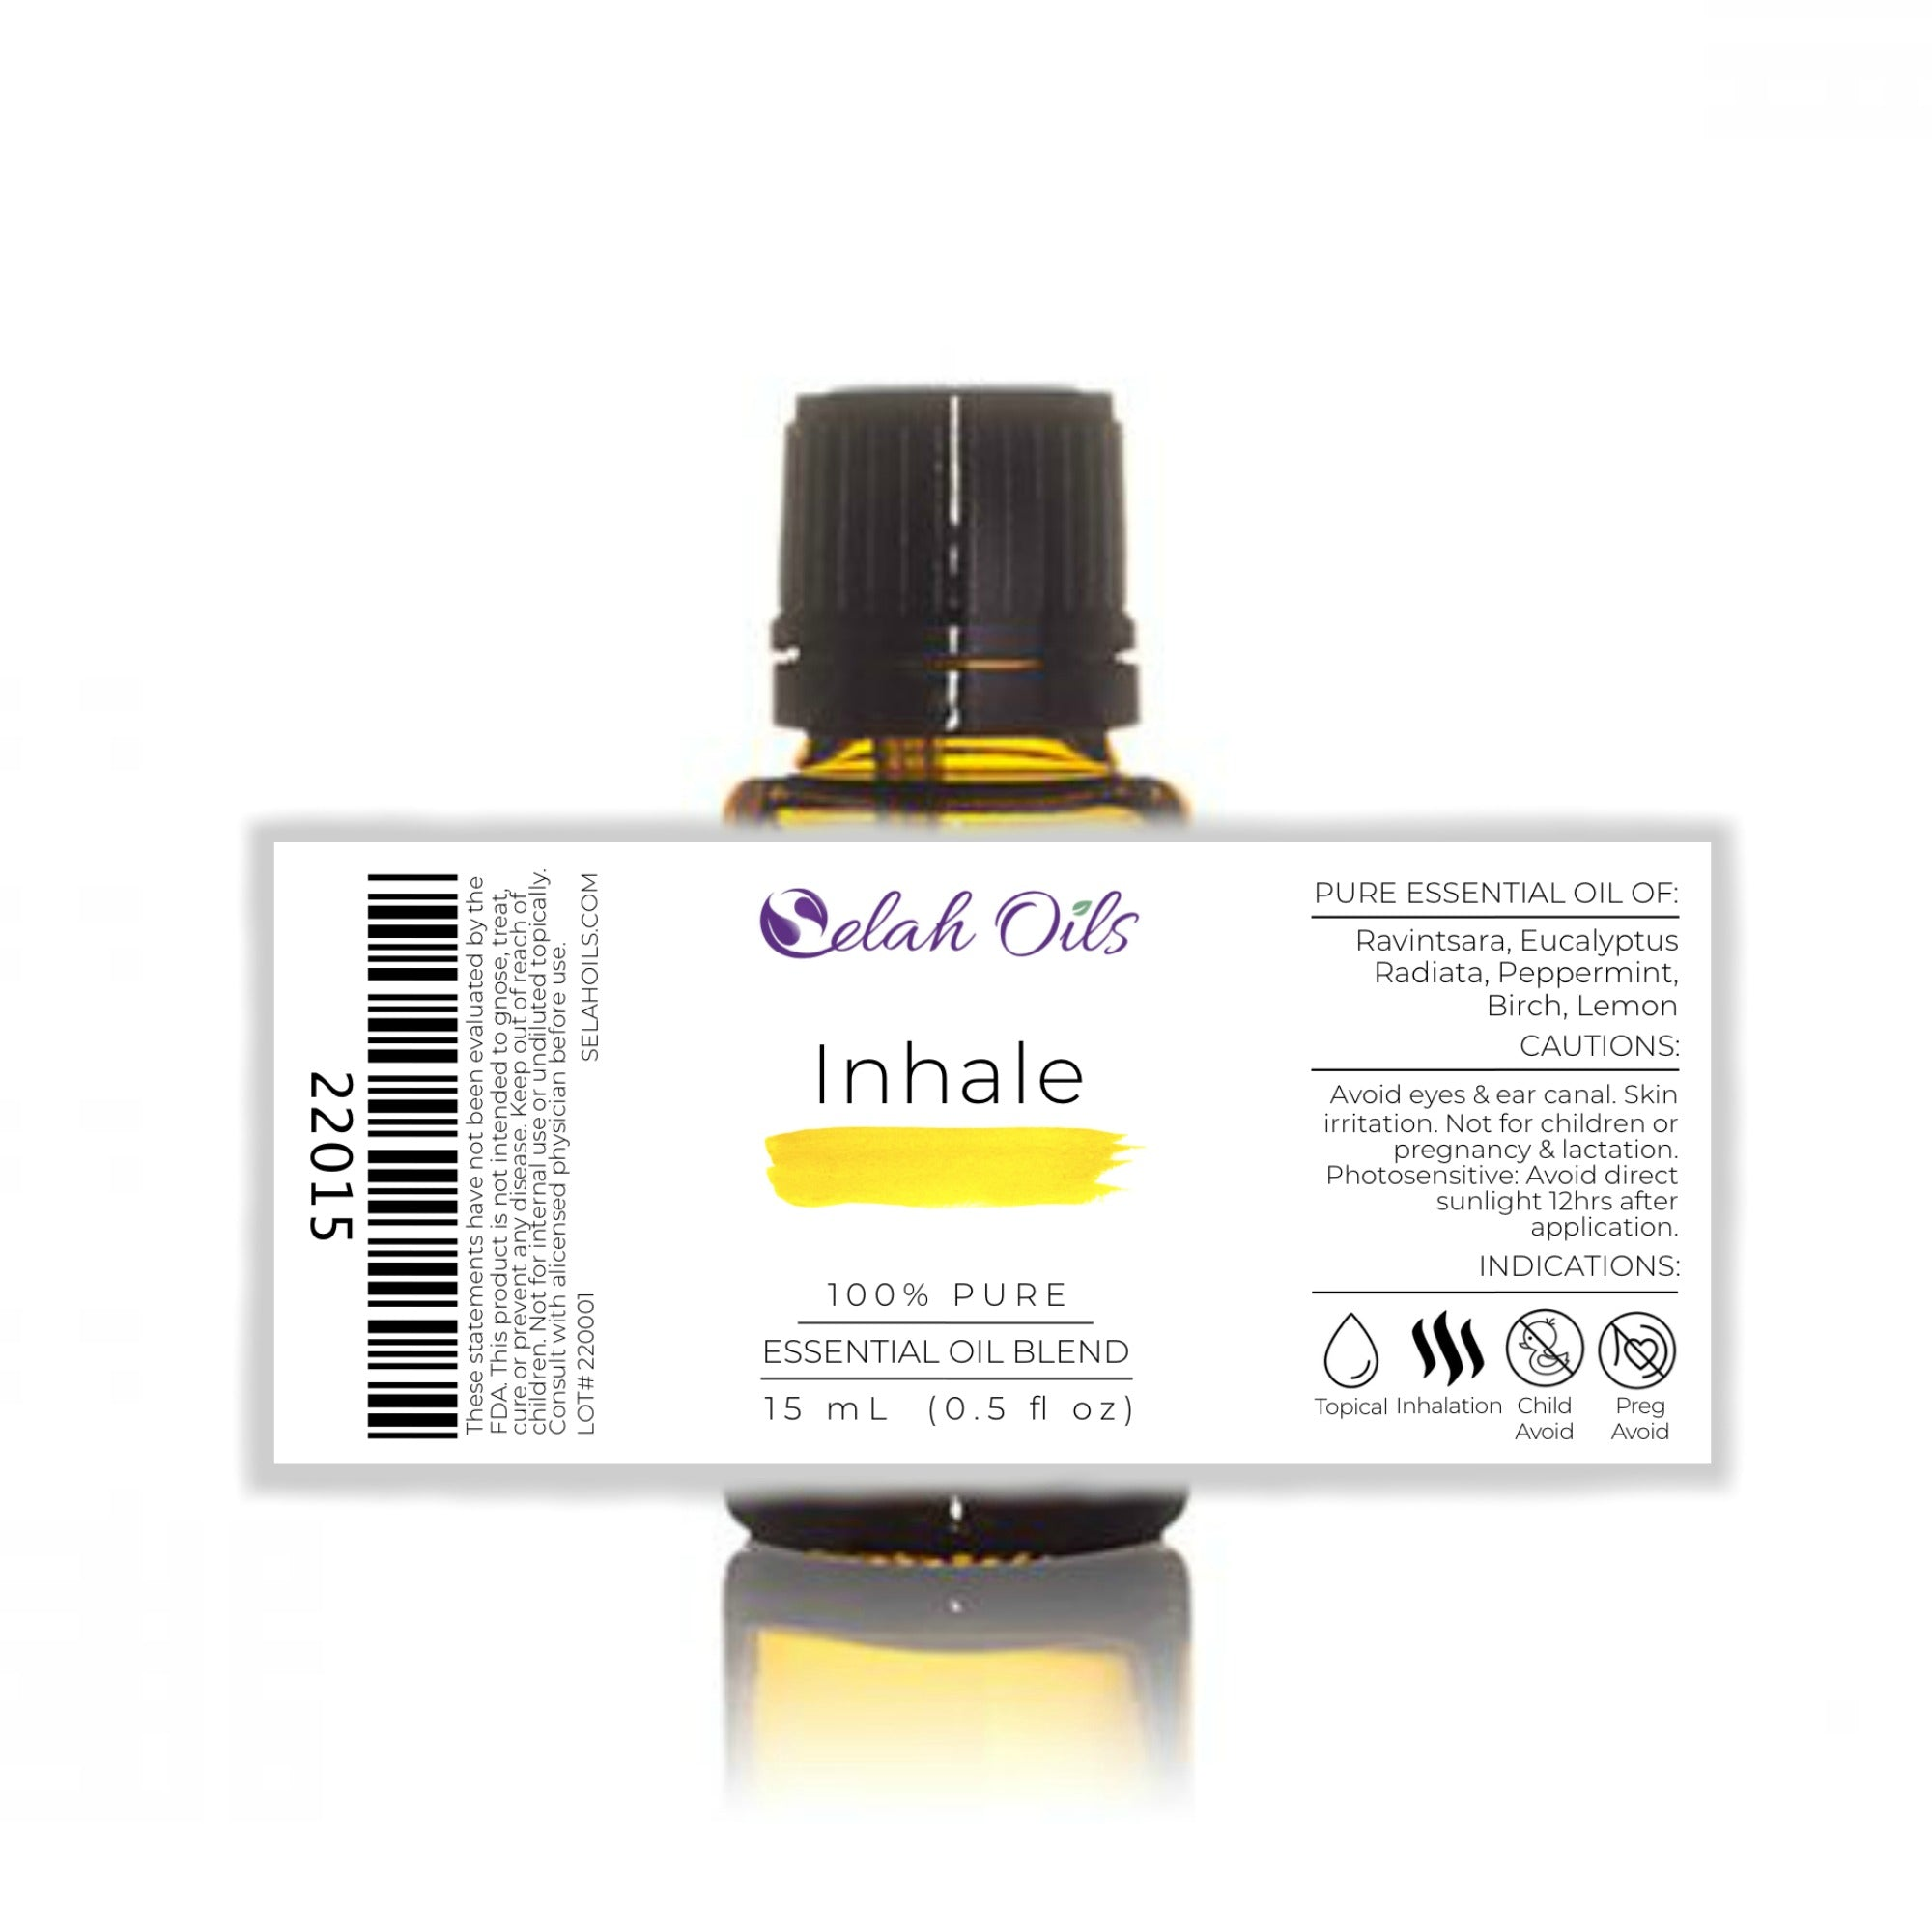 Inhale Essential Oil Blend